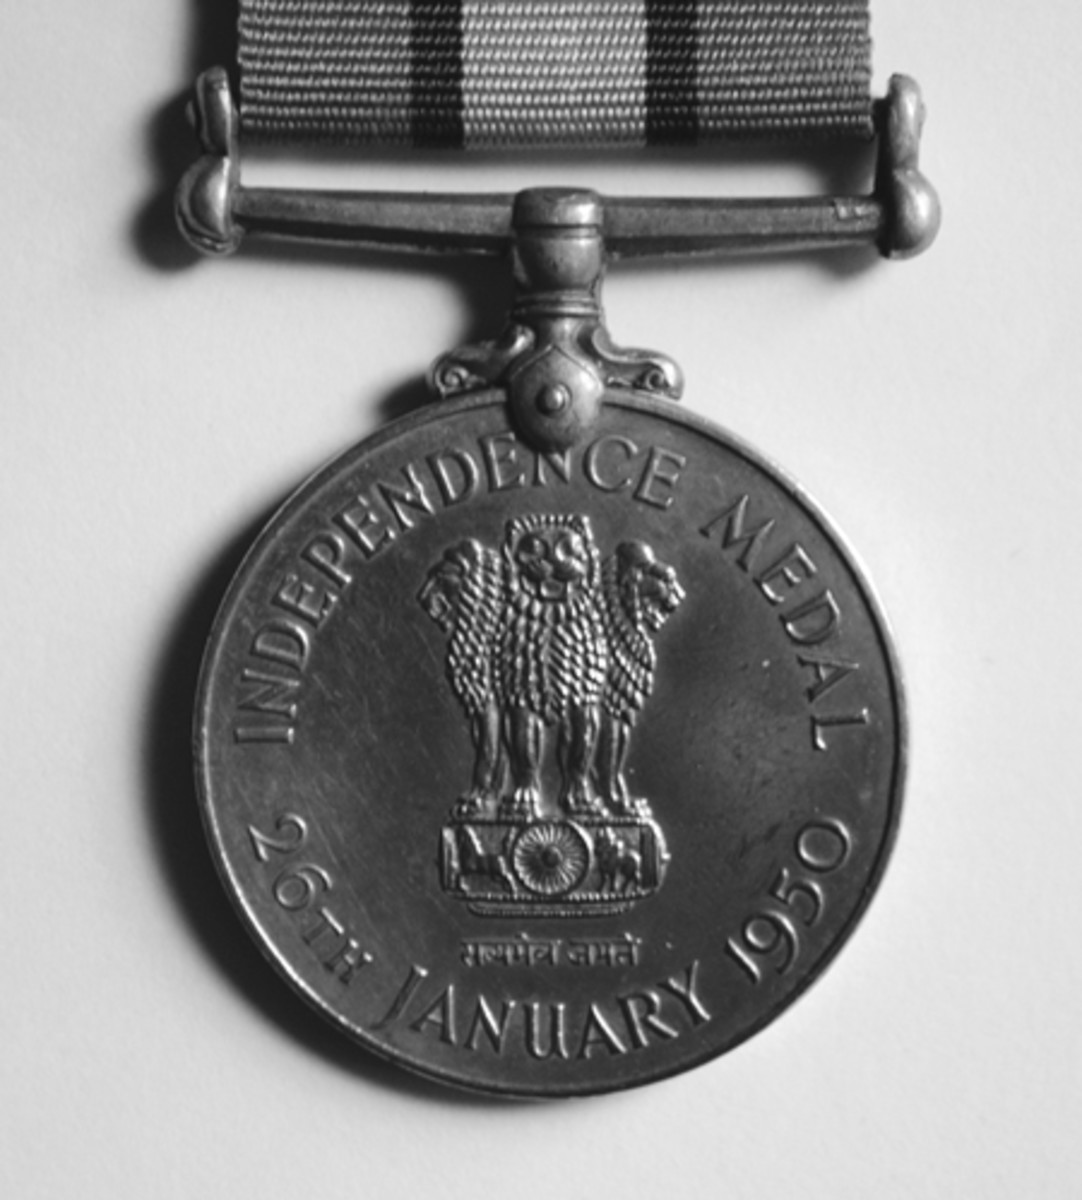 Obverse of Police Independence Medal of 1950.